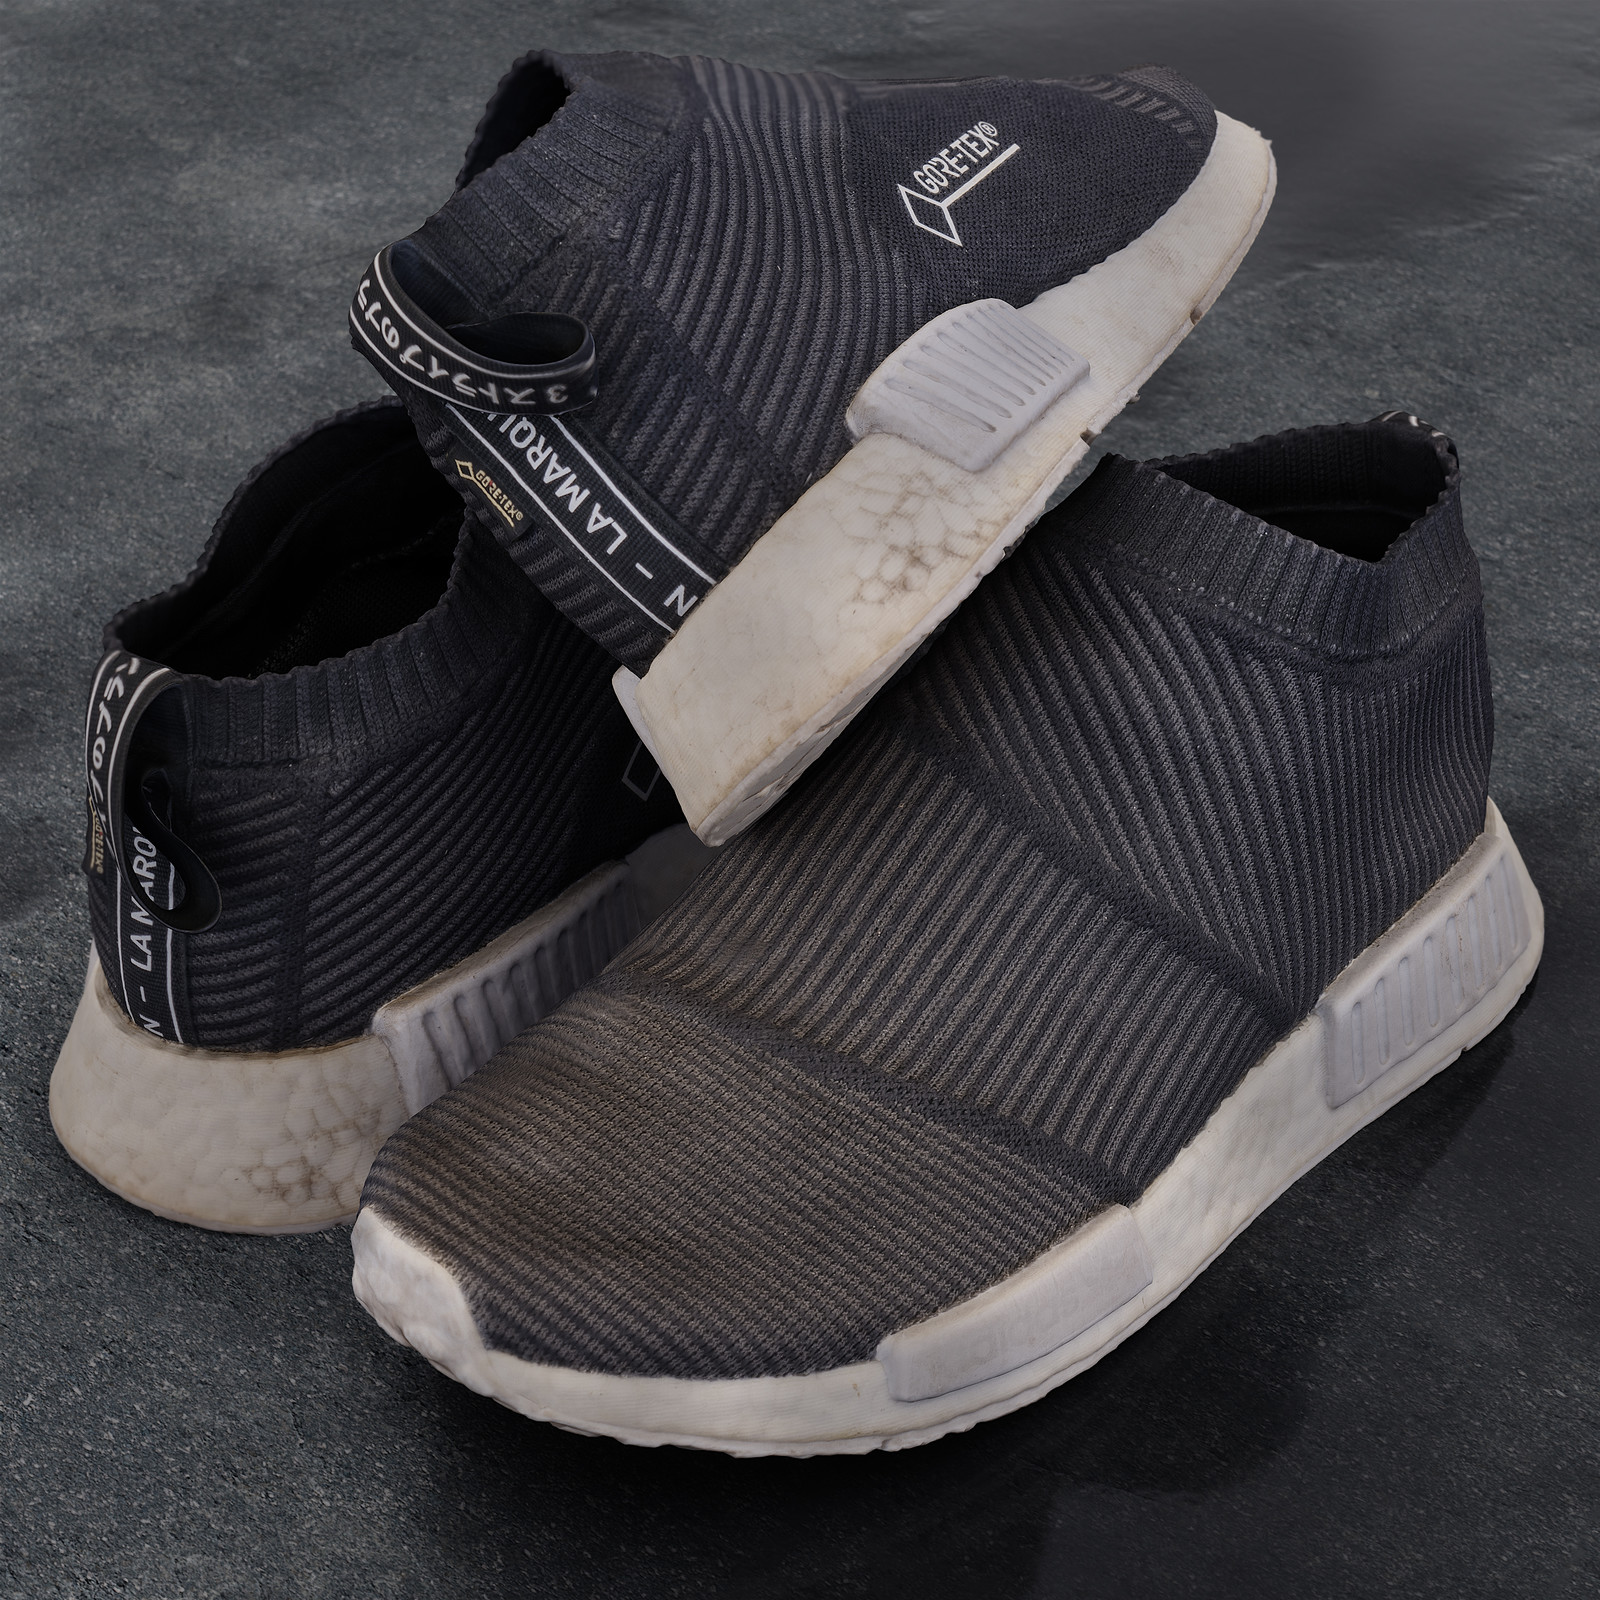 ADIDAS_NMD_CS1_GORE-TEX_PHOTOSCAN